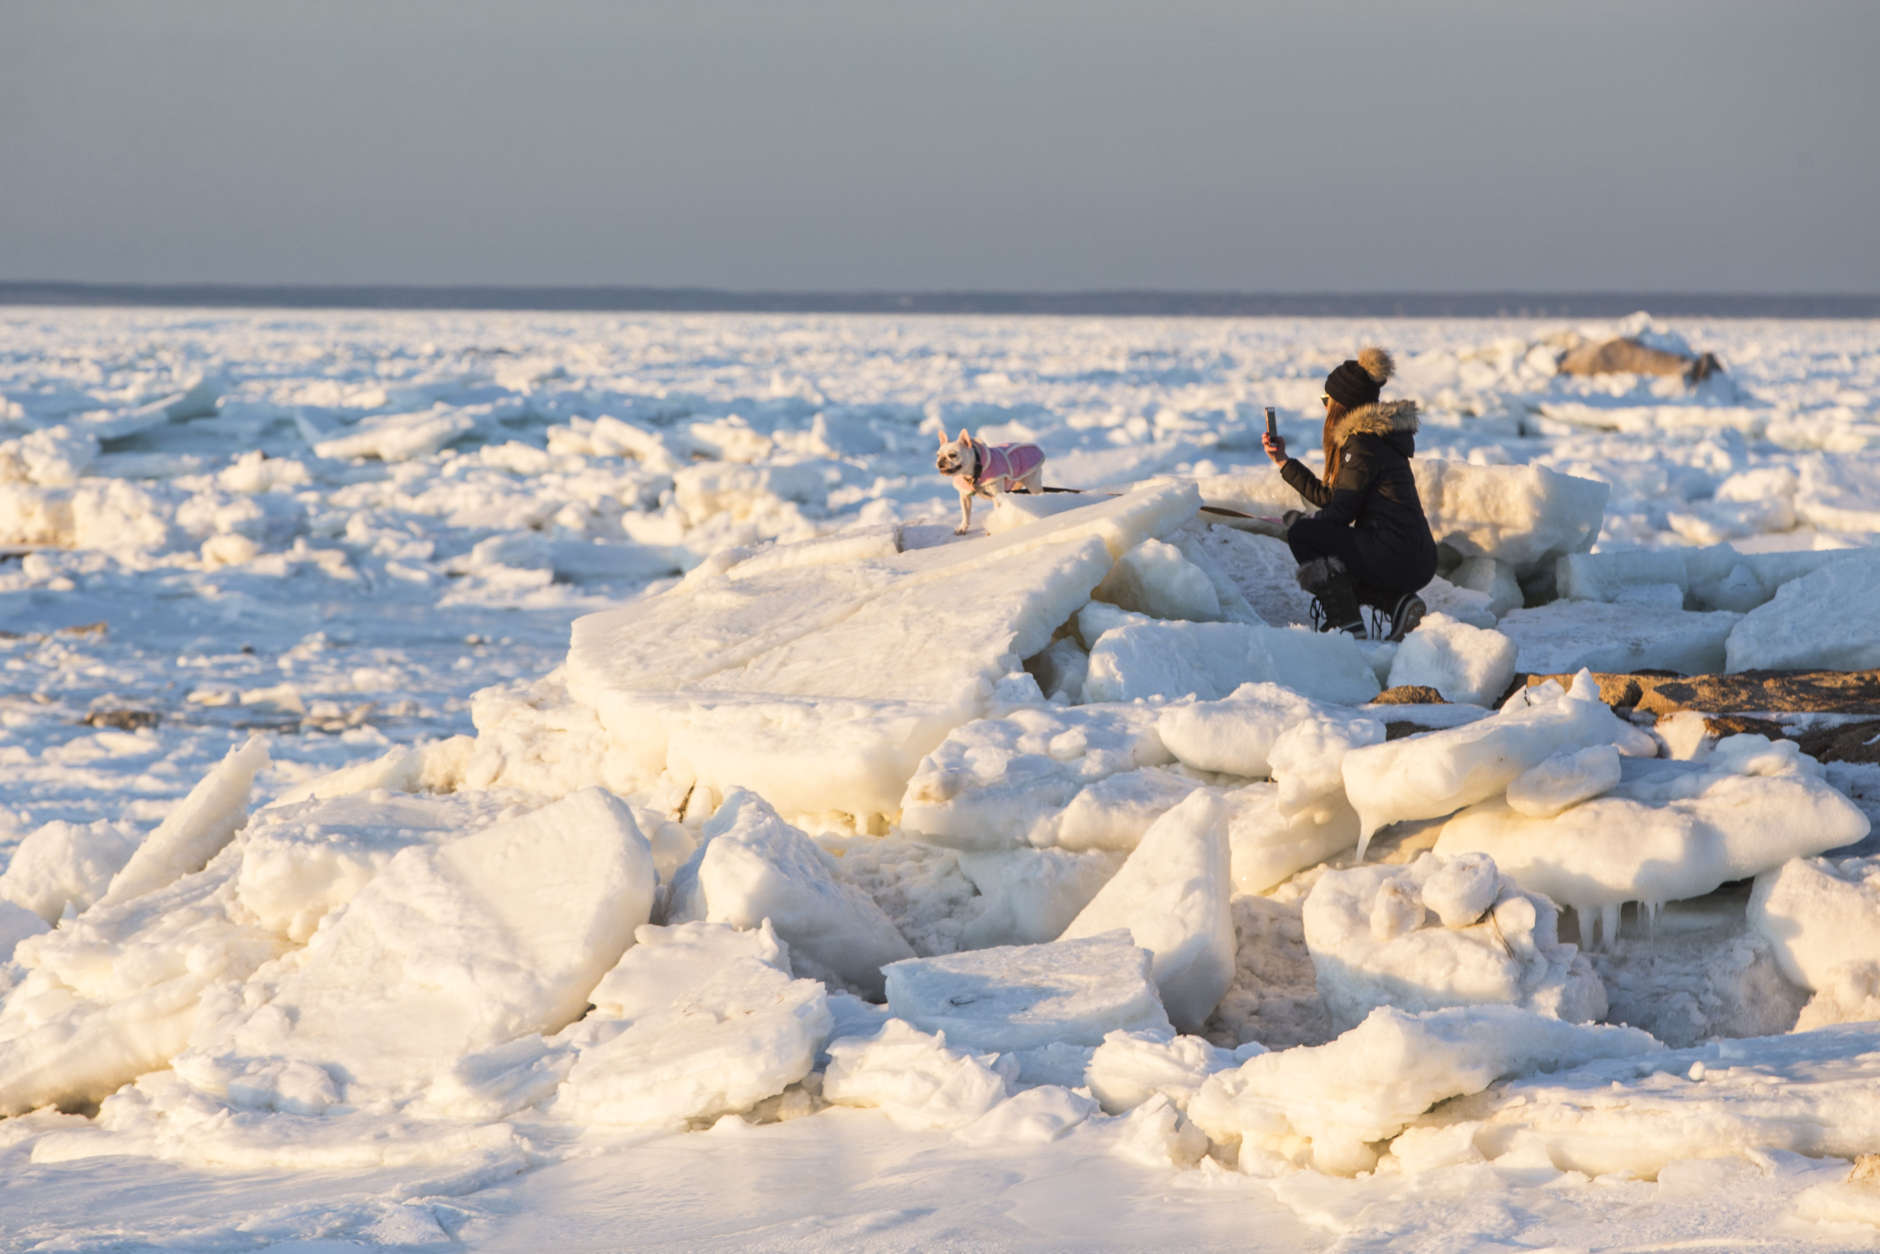 ORLEANS, MA - JANUARY 03: A woman photographs her English Bull Dog on a jetty next to an ice covered Cape Cod Bay near Rock Harbor on January 3, 2018 in Orleans, Massachusetts. A winter storm is hitting the east coast from Florida to New England bringing snow and frigid temperatures. (Photo by Scott Eisen/Getty Images)